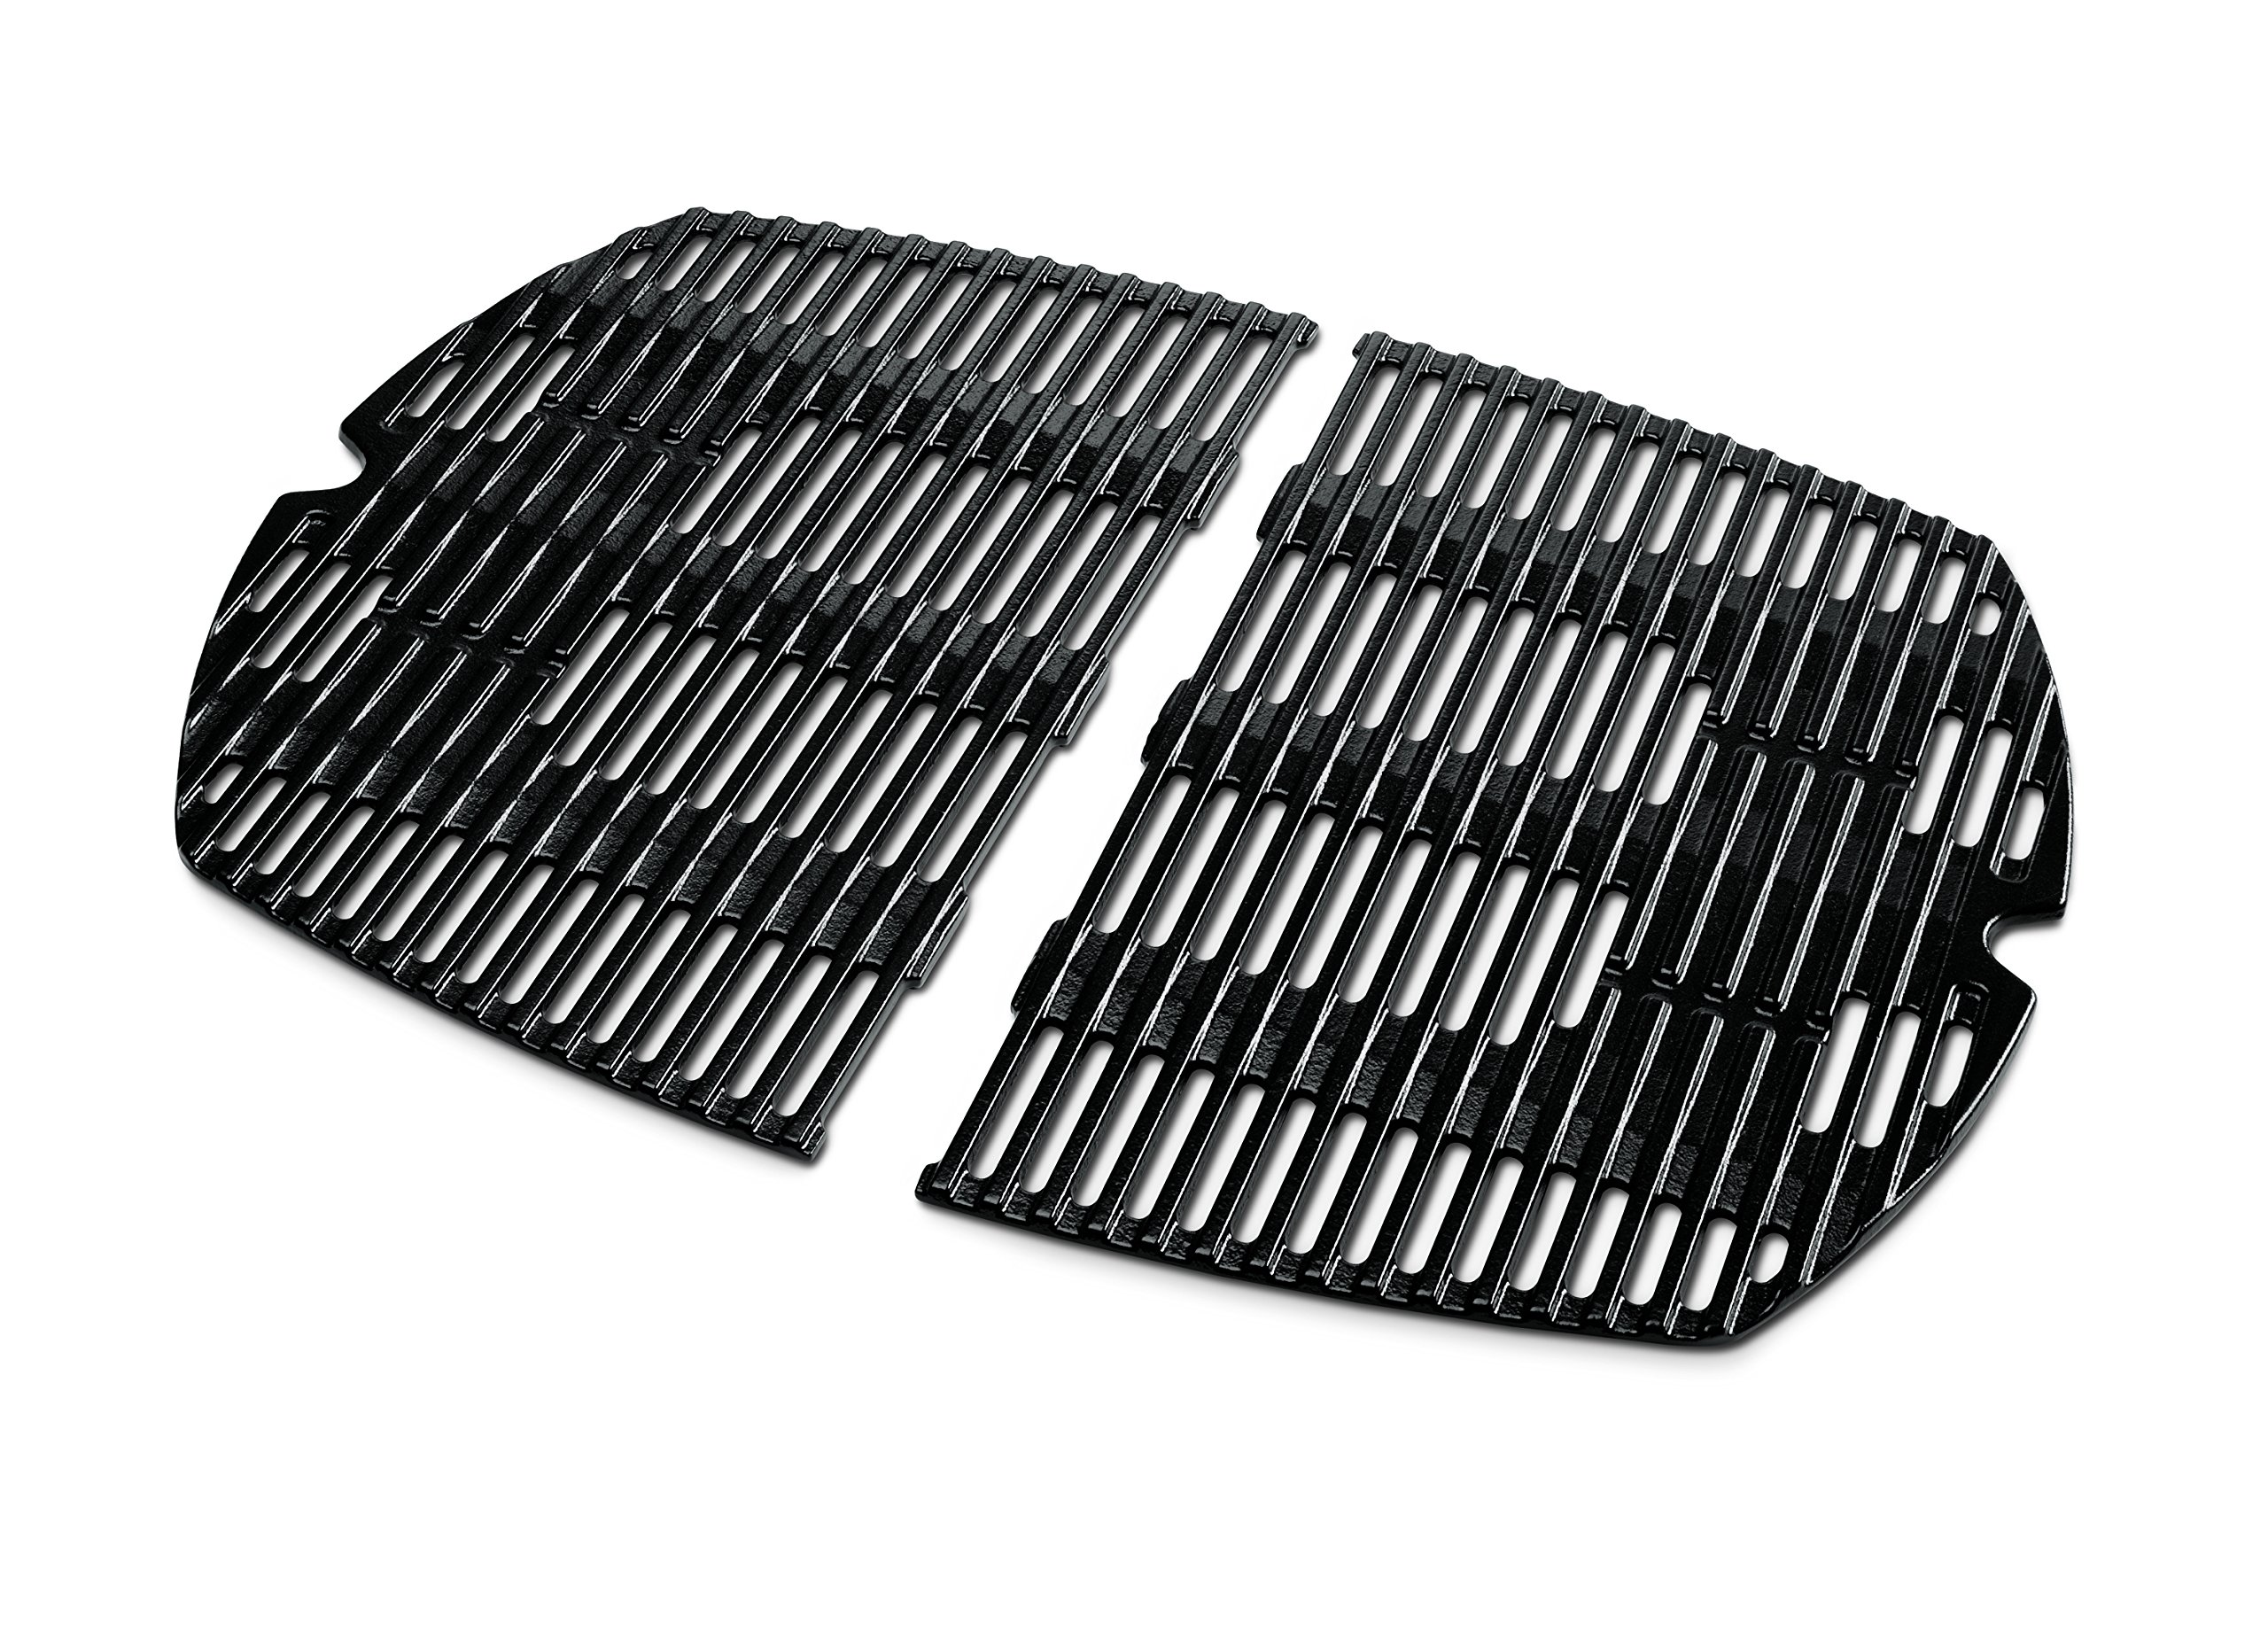 Weber Q® Cooking Grate Q3000/300 Series product image